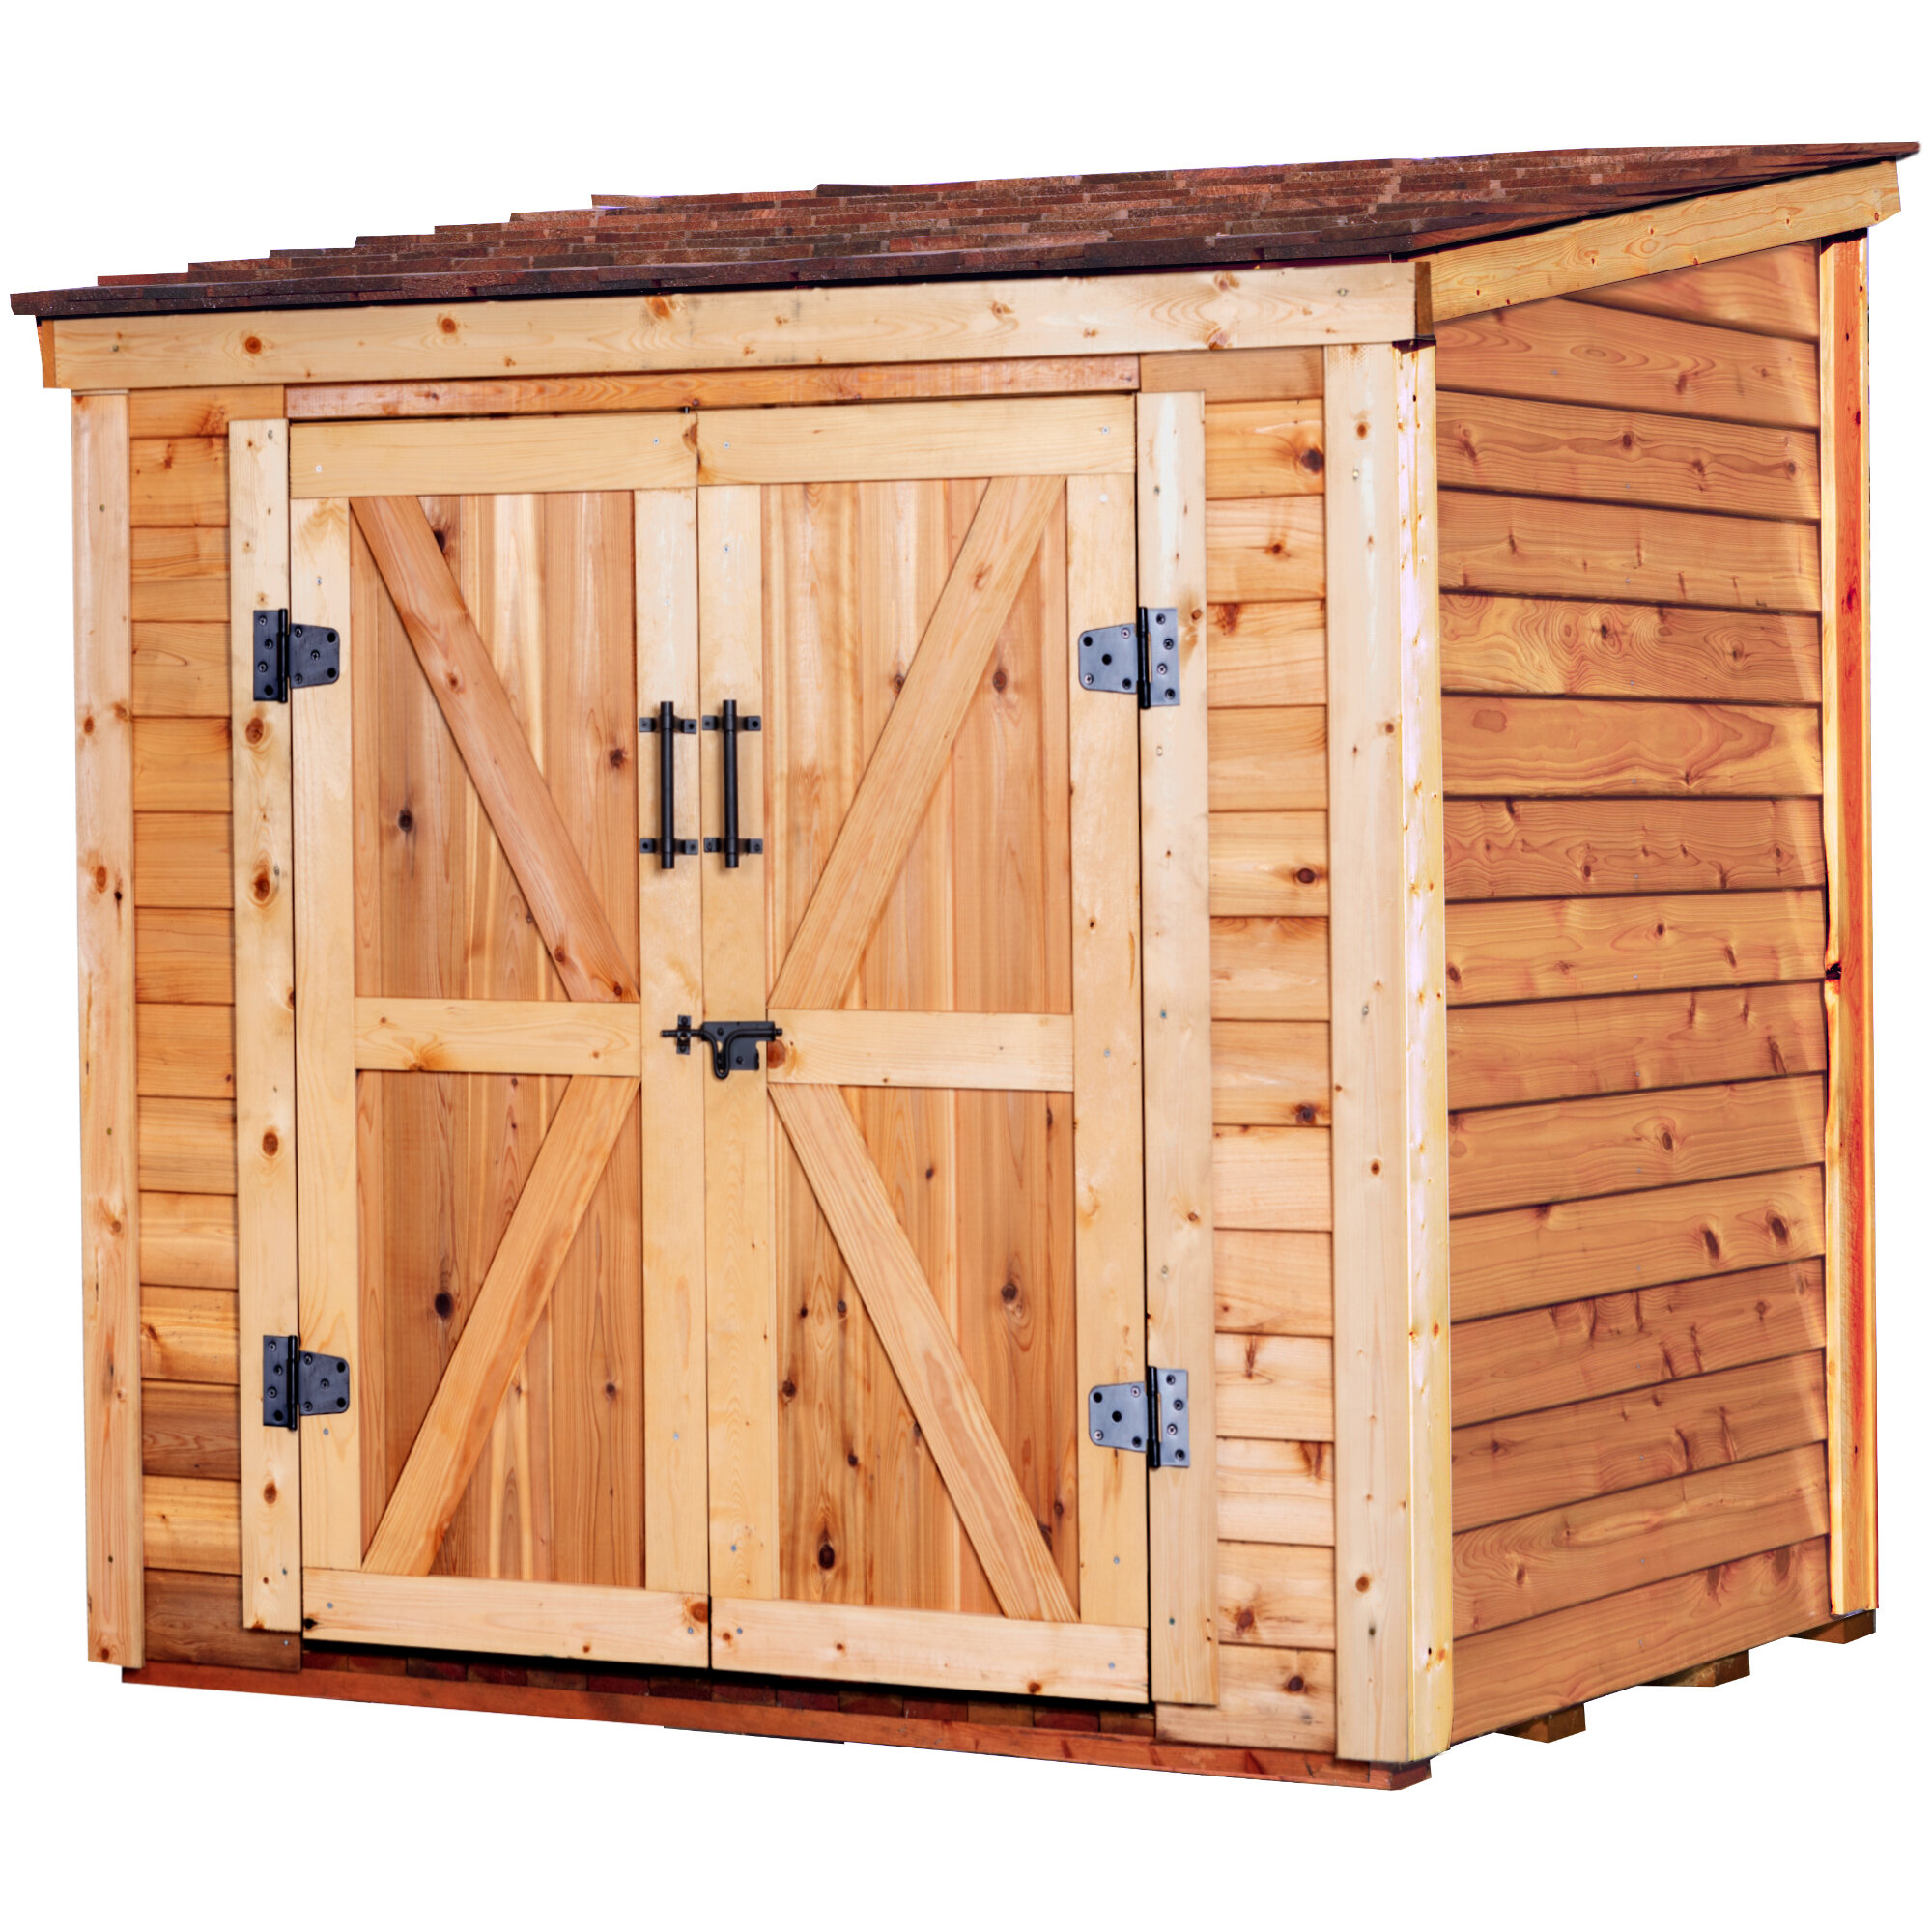 Leisure Season 6 Ft W X 4 Ft D Solid Wood Lean To Storage Shed Reviews Wayfair